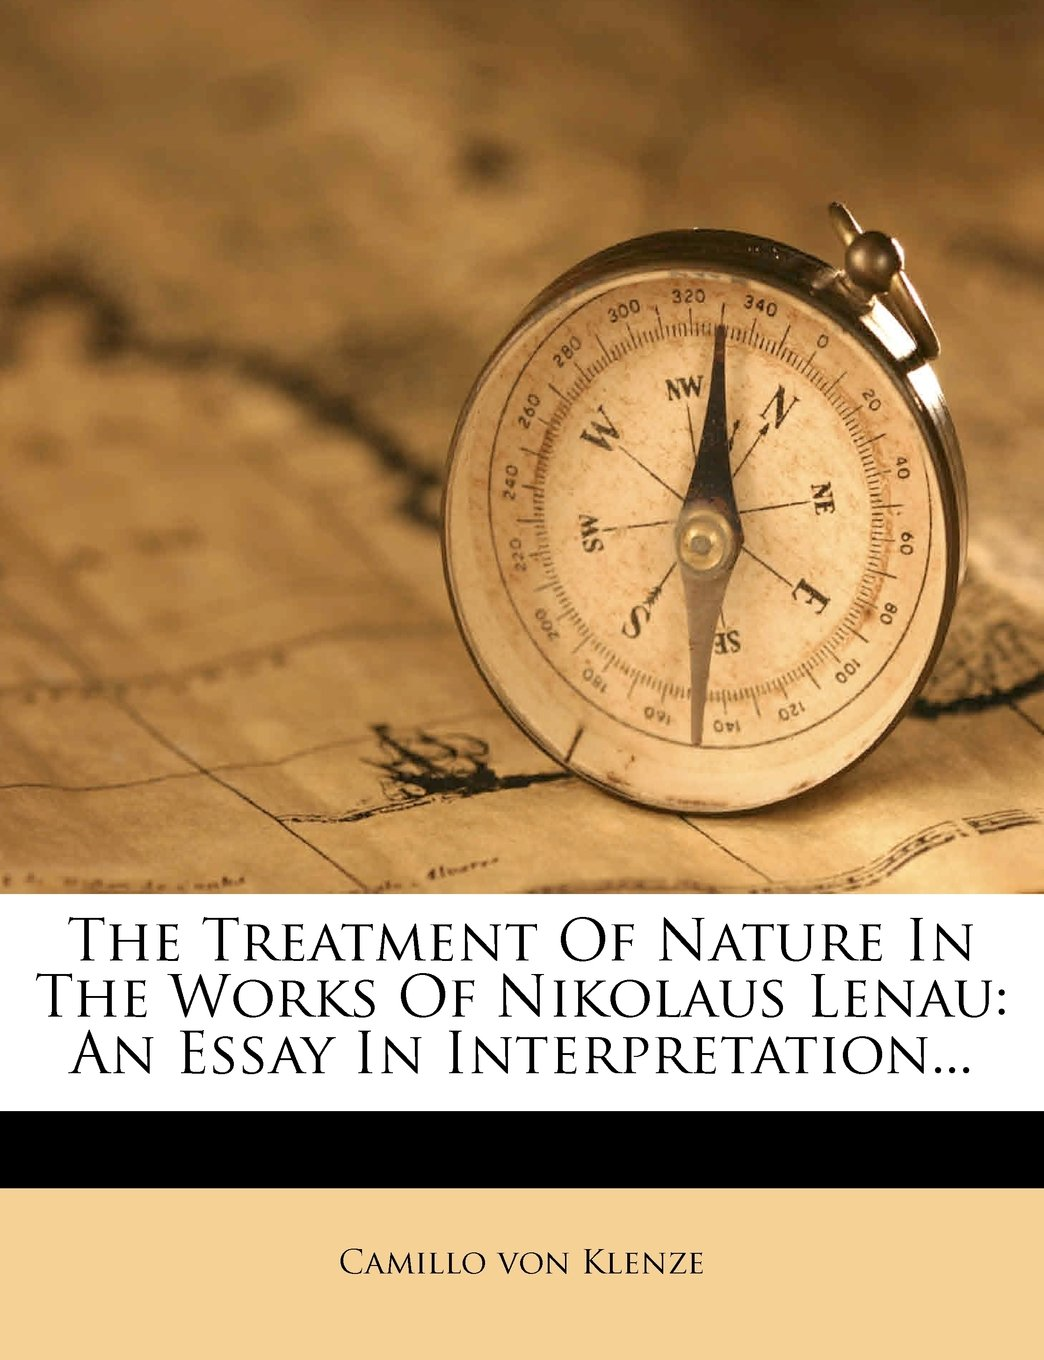 Download The Treatment Of Nature In The Works Of Nikolaus Lenau: An Essay In Interpretation... (German Edition) pdf epub